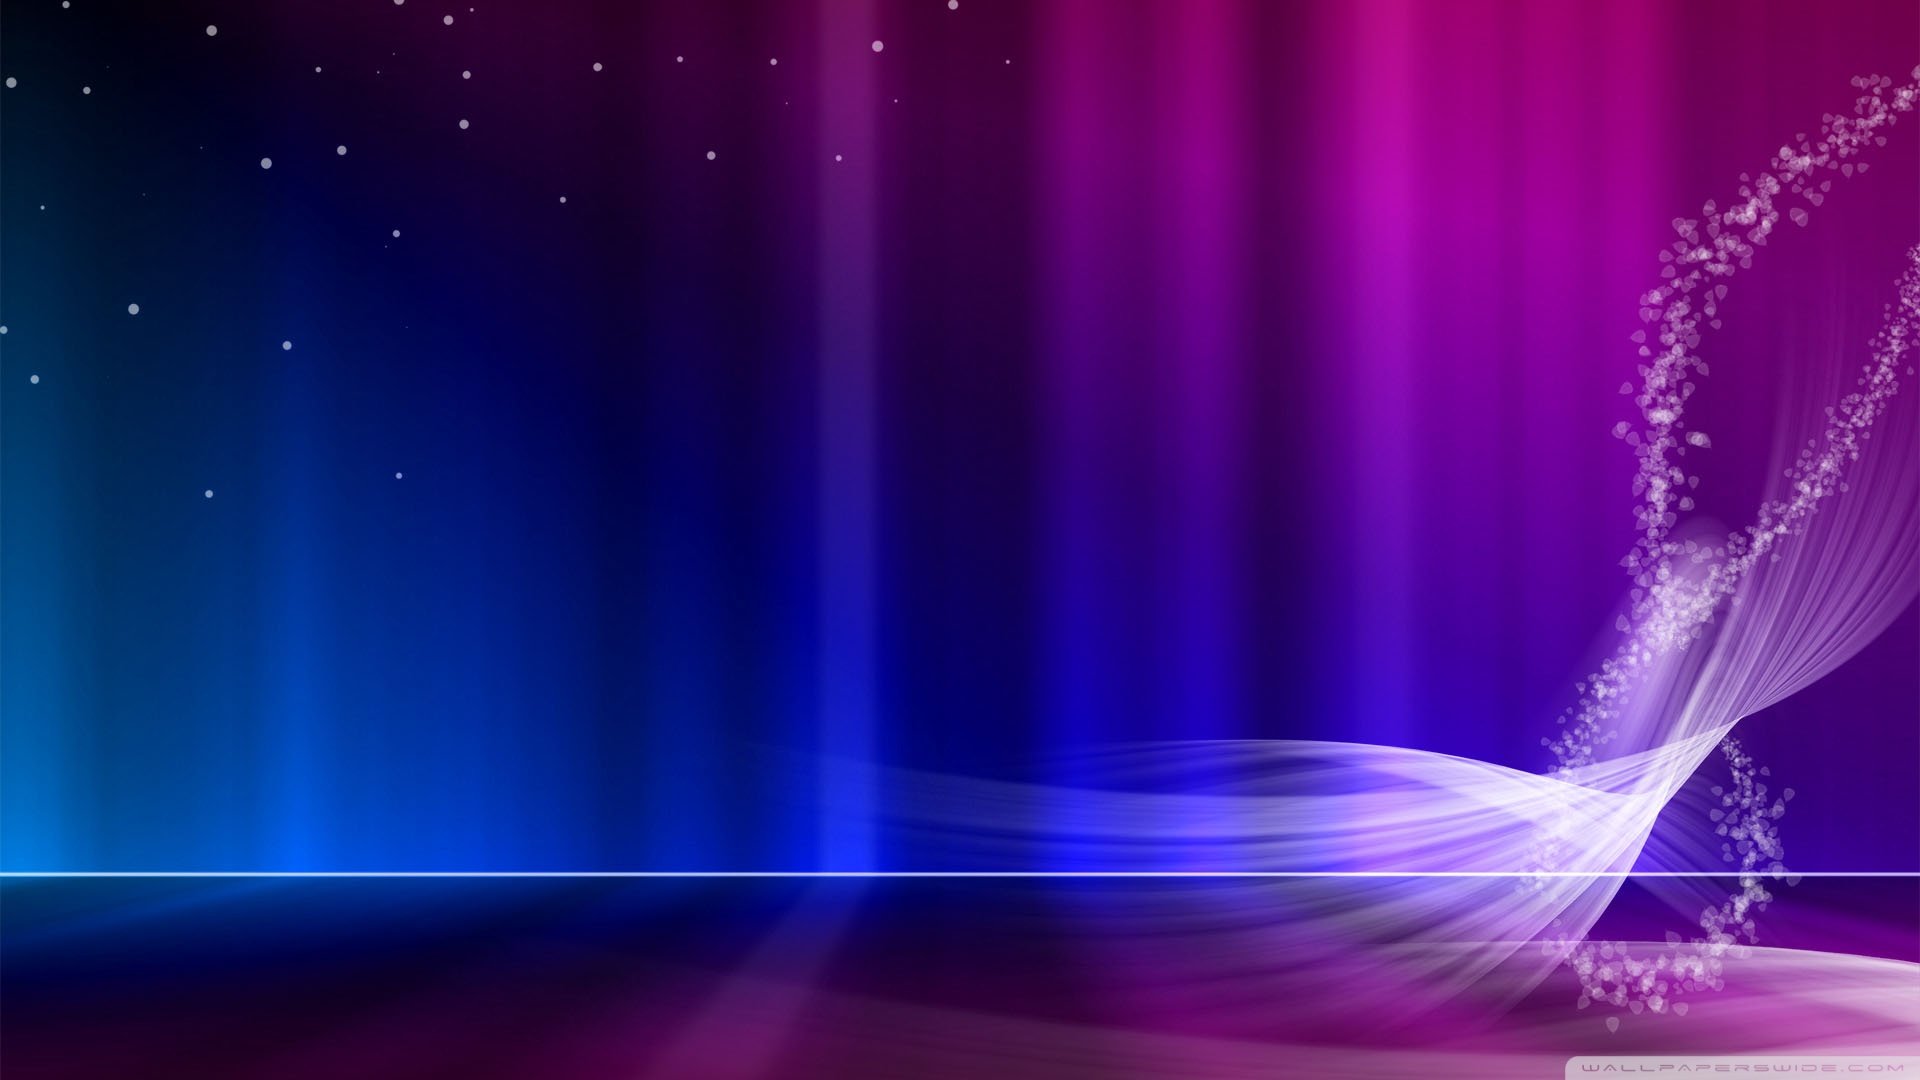 And Purple Aurora Wallpaper 1920x1080 Vista Blue And Purple Aurora 1920x1080